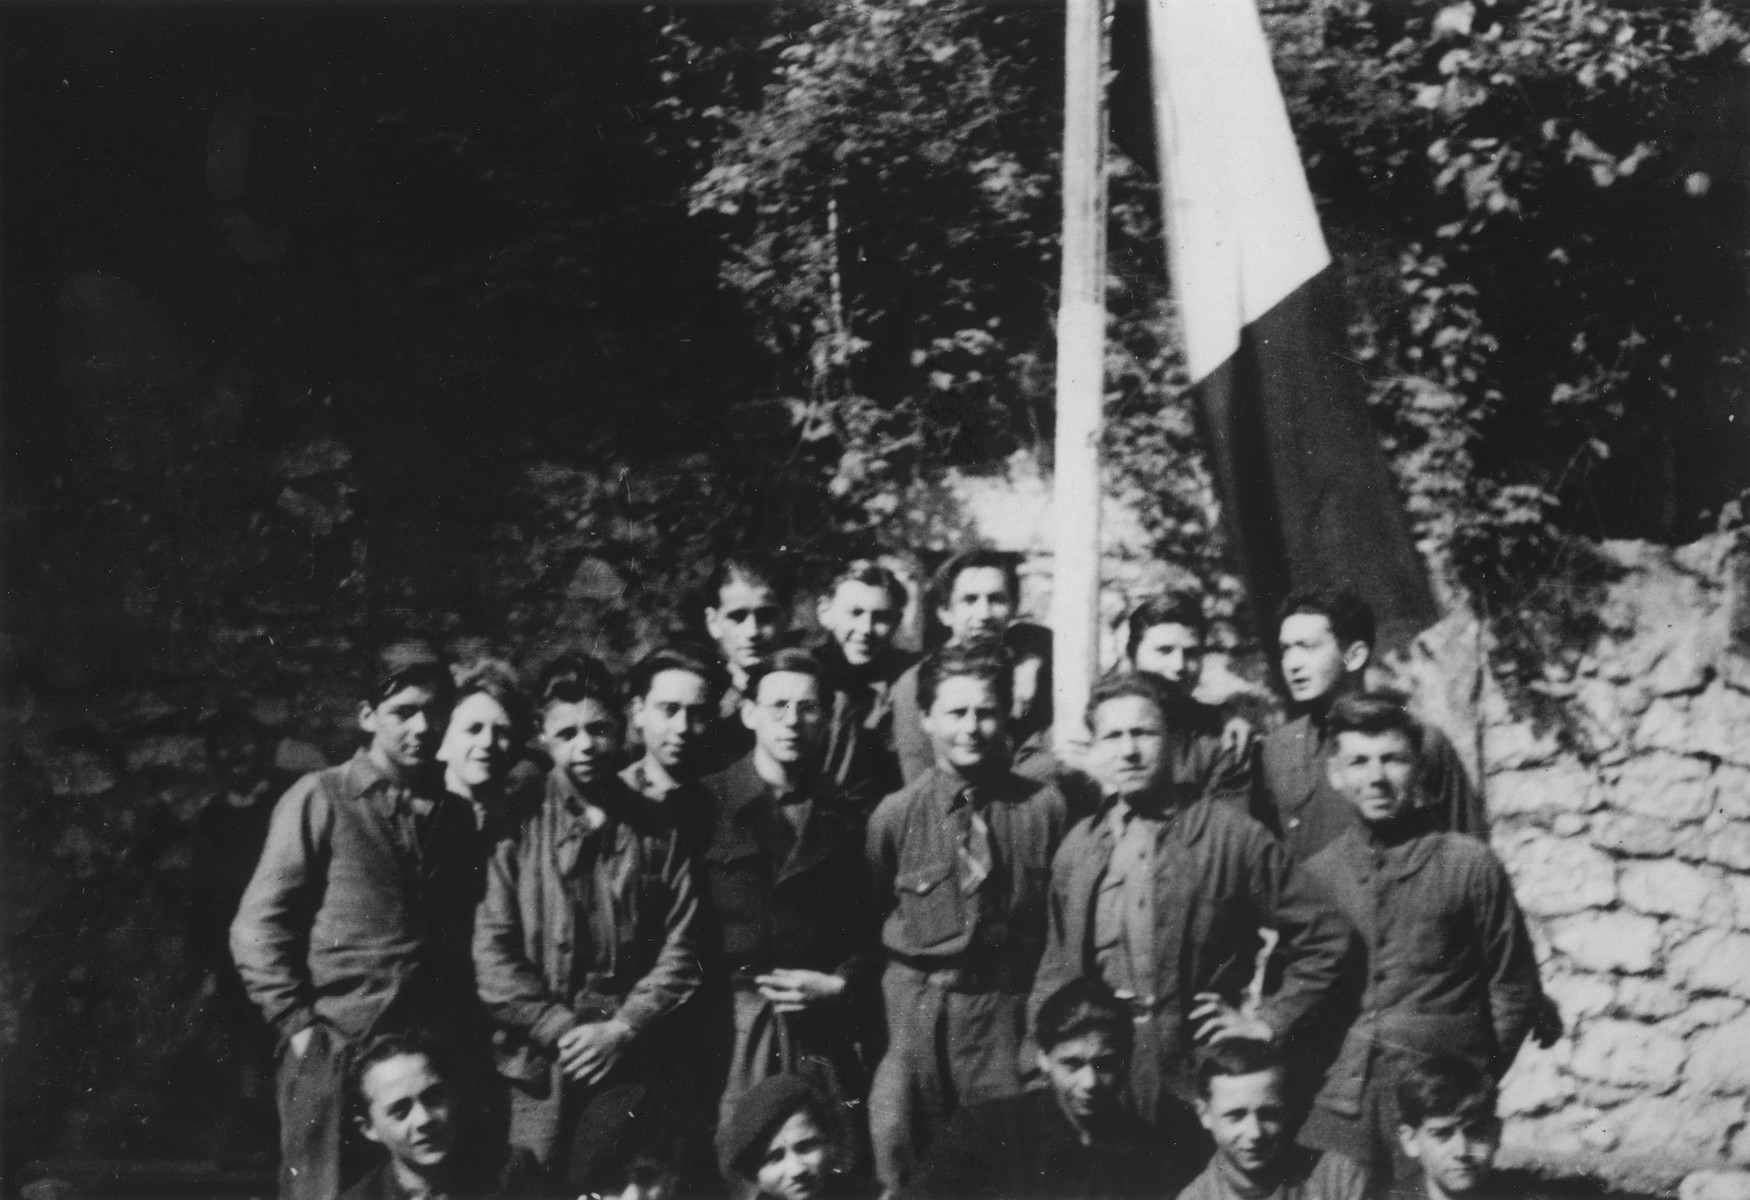 The members of the Vichy fascist youth movement, Moissons Nouvelles, gather around a flag pole in Pont de Beauvoisin.  A few of the boys are hidden Jews who were placed at the center by the OSE (Oeuvre de Secours aux Enfants).